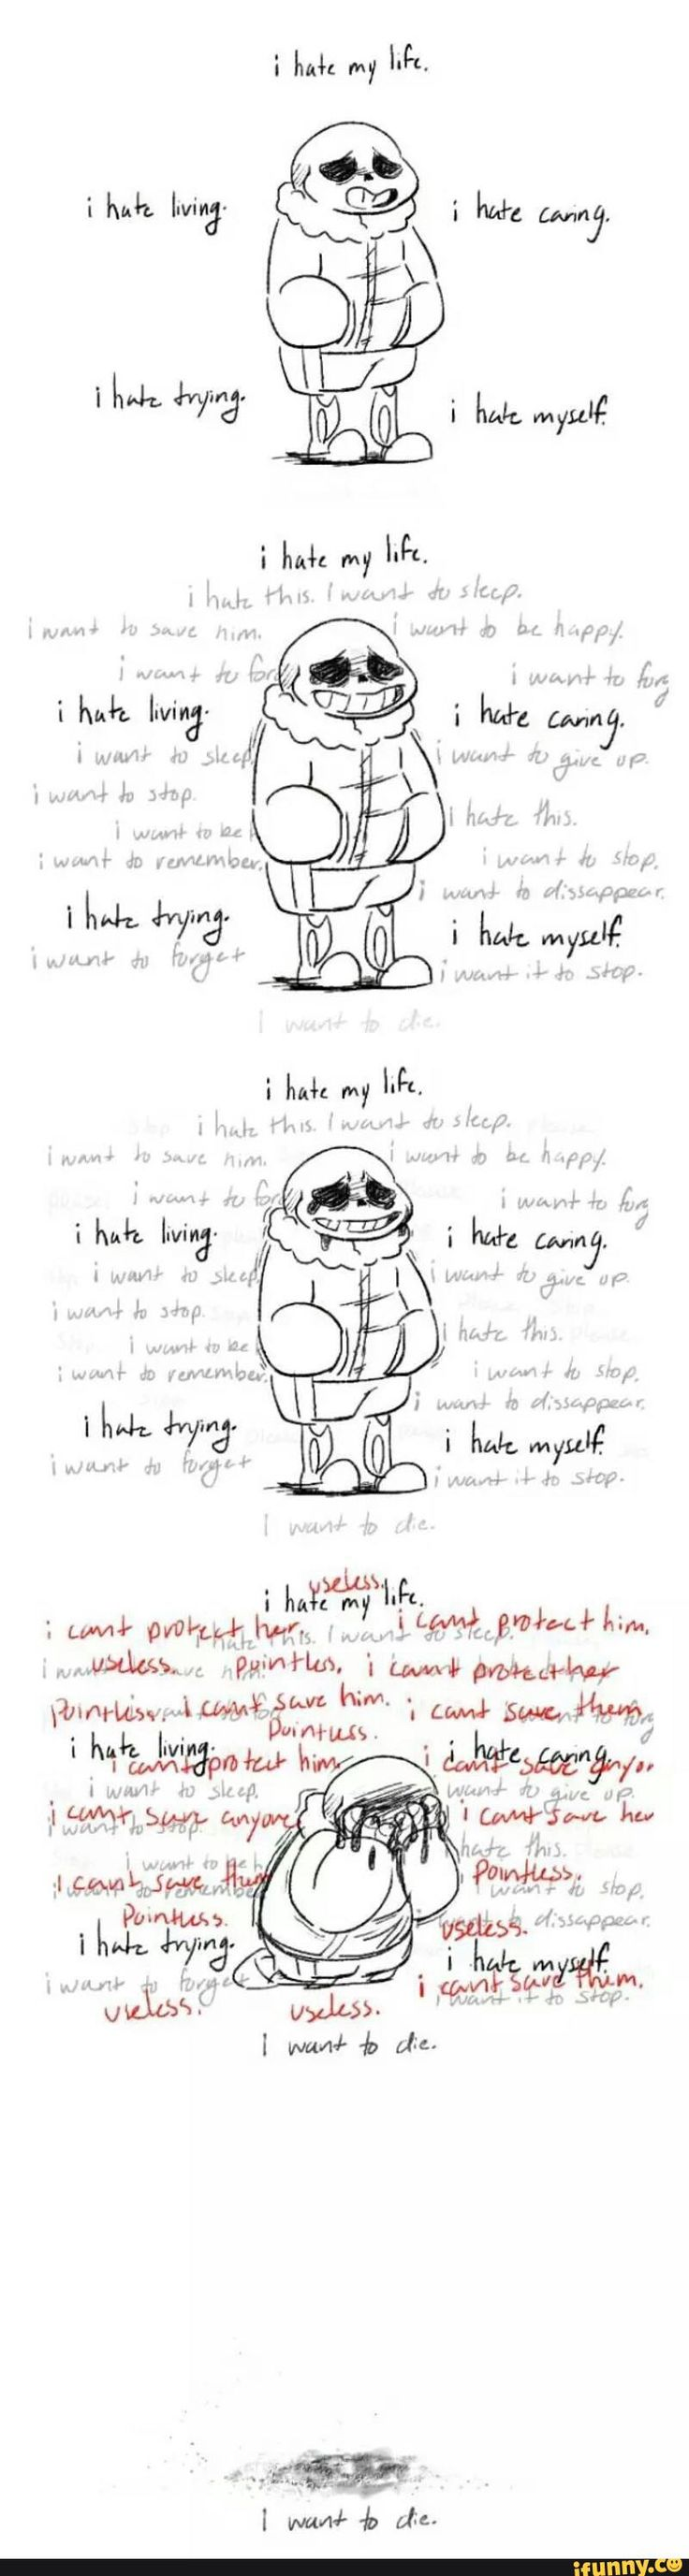 ... This is exactly what depression is. Horrible thoughts that aren't true plague your mind. If you feel depressed please reach out for help, there are other ways out rather than dying. Don't end it; don't end your sentence, 'cause someone really cares about you. I <3 you guys!